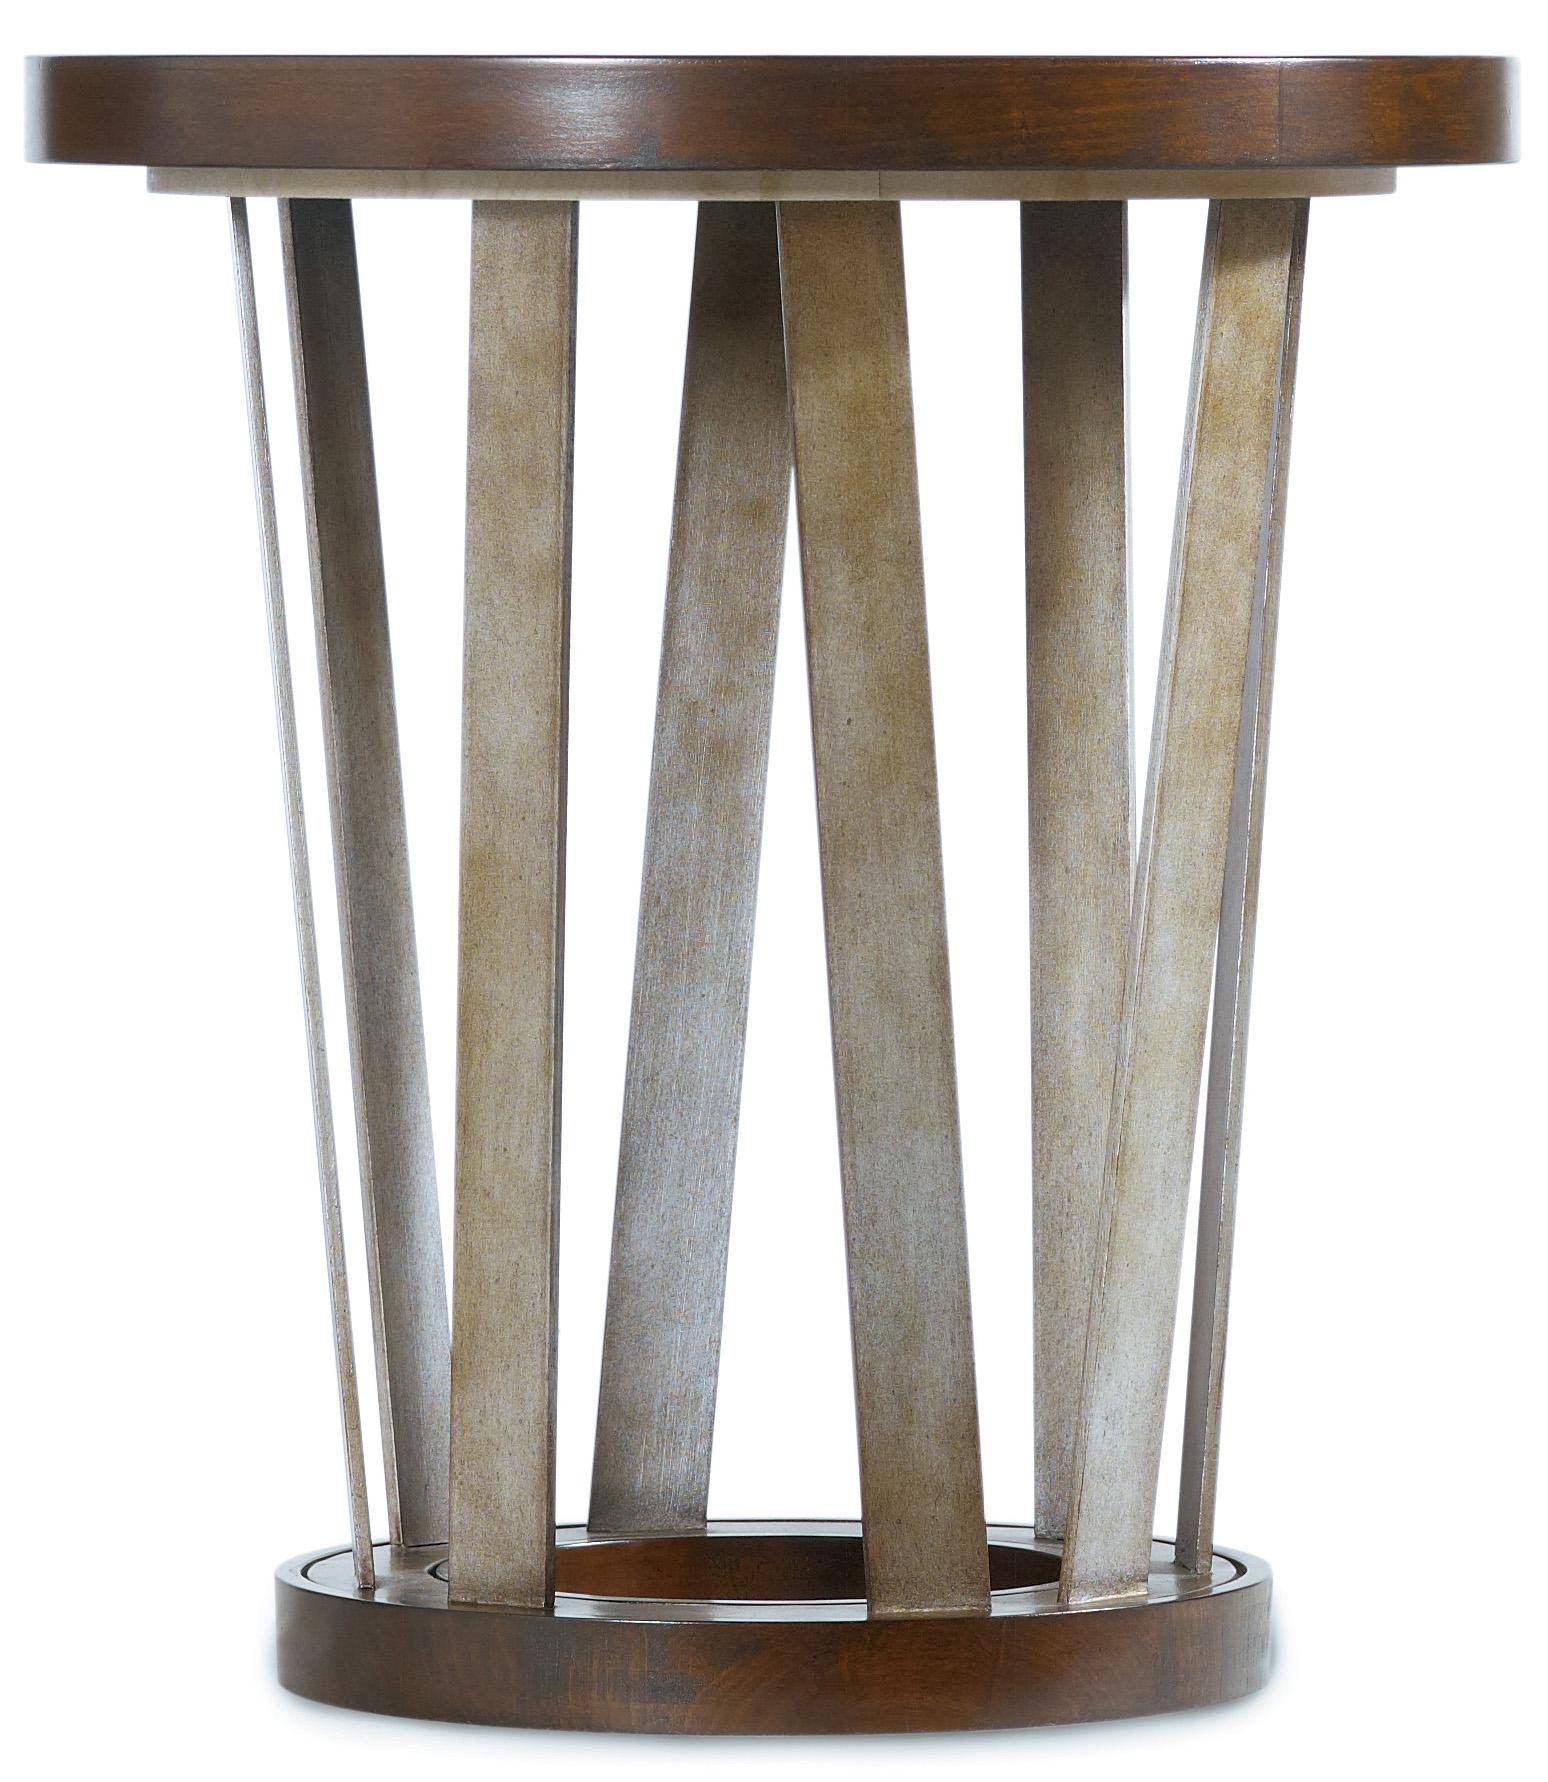 Hooker Furniture Lorimer Round End Table   Item Number: 5065 80116